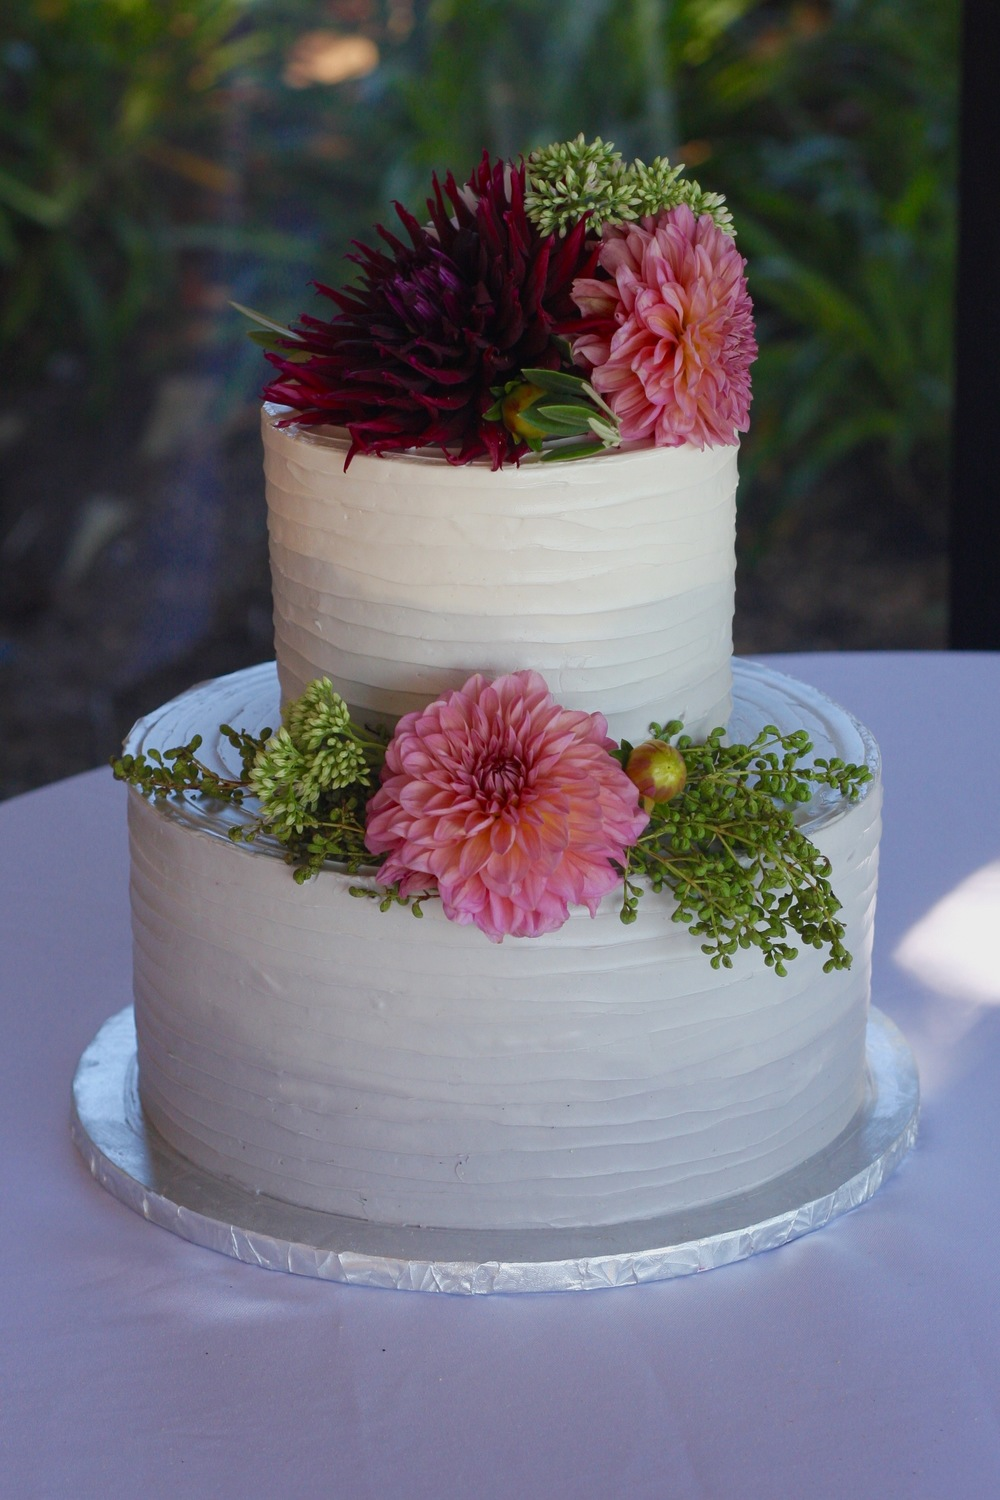 Gray and White Ombre Buttercream Cake